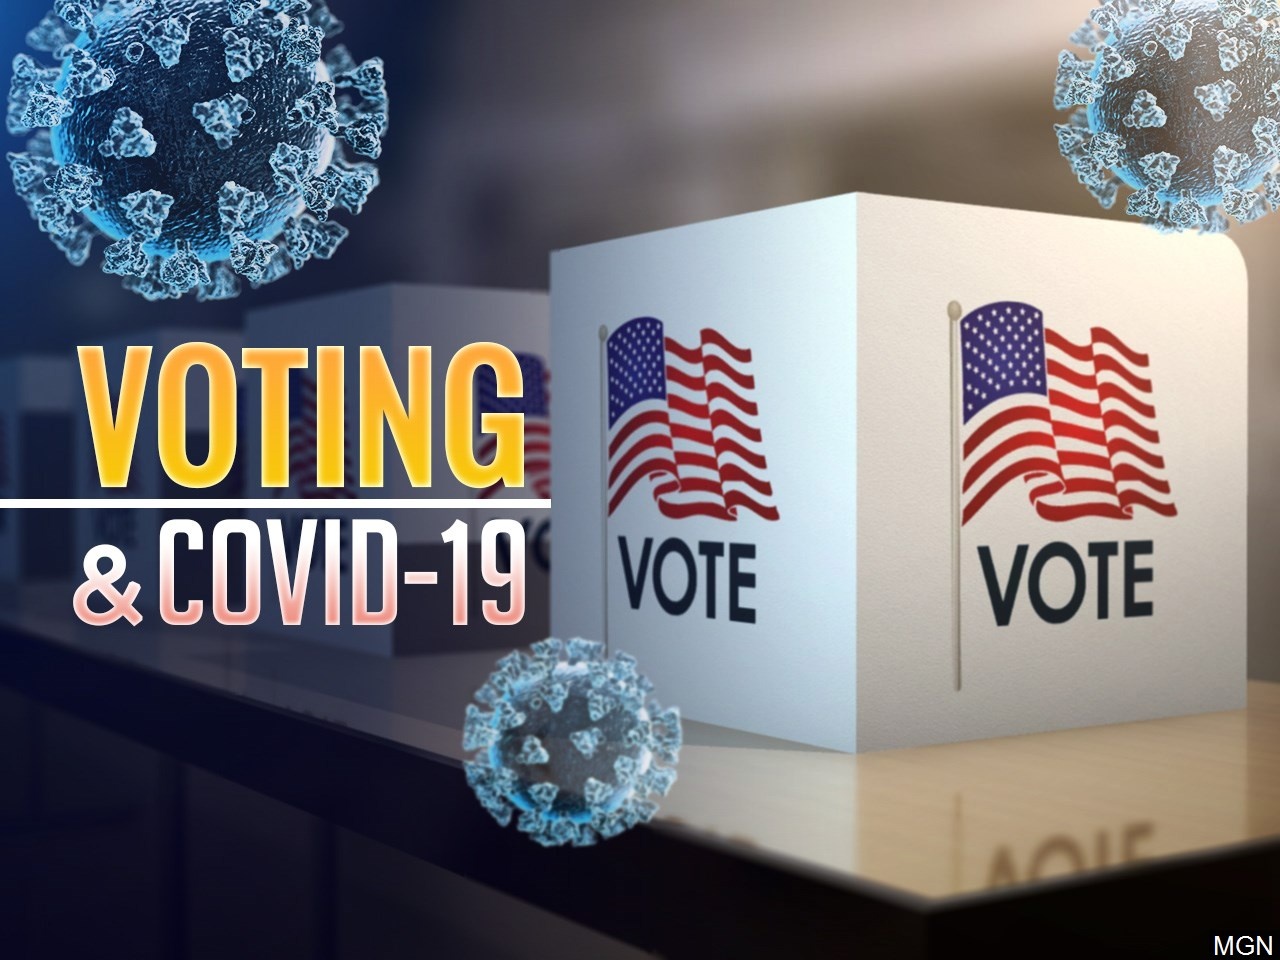 Virginia Tech Students In Quarantine Isolation Due To Covid 19 Still Able To Vote On Election Day Wfxrtv